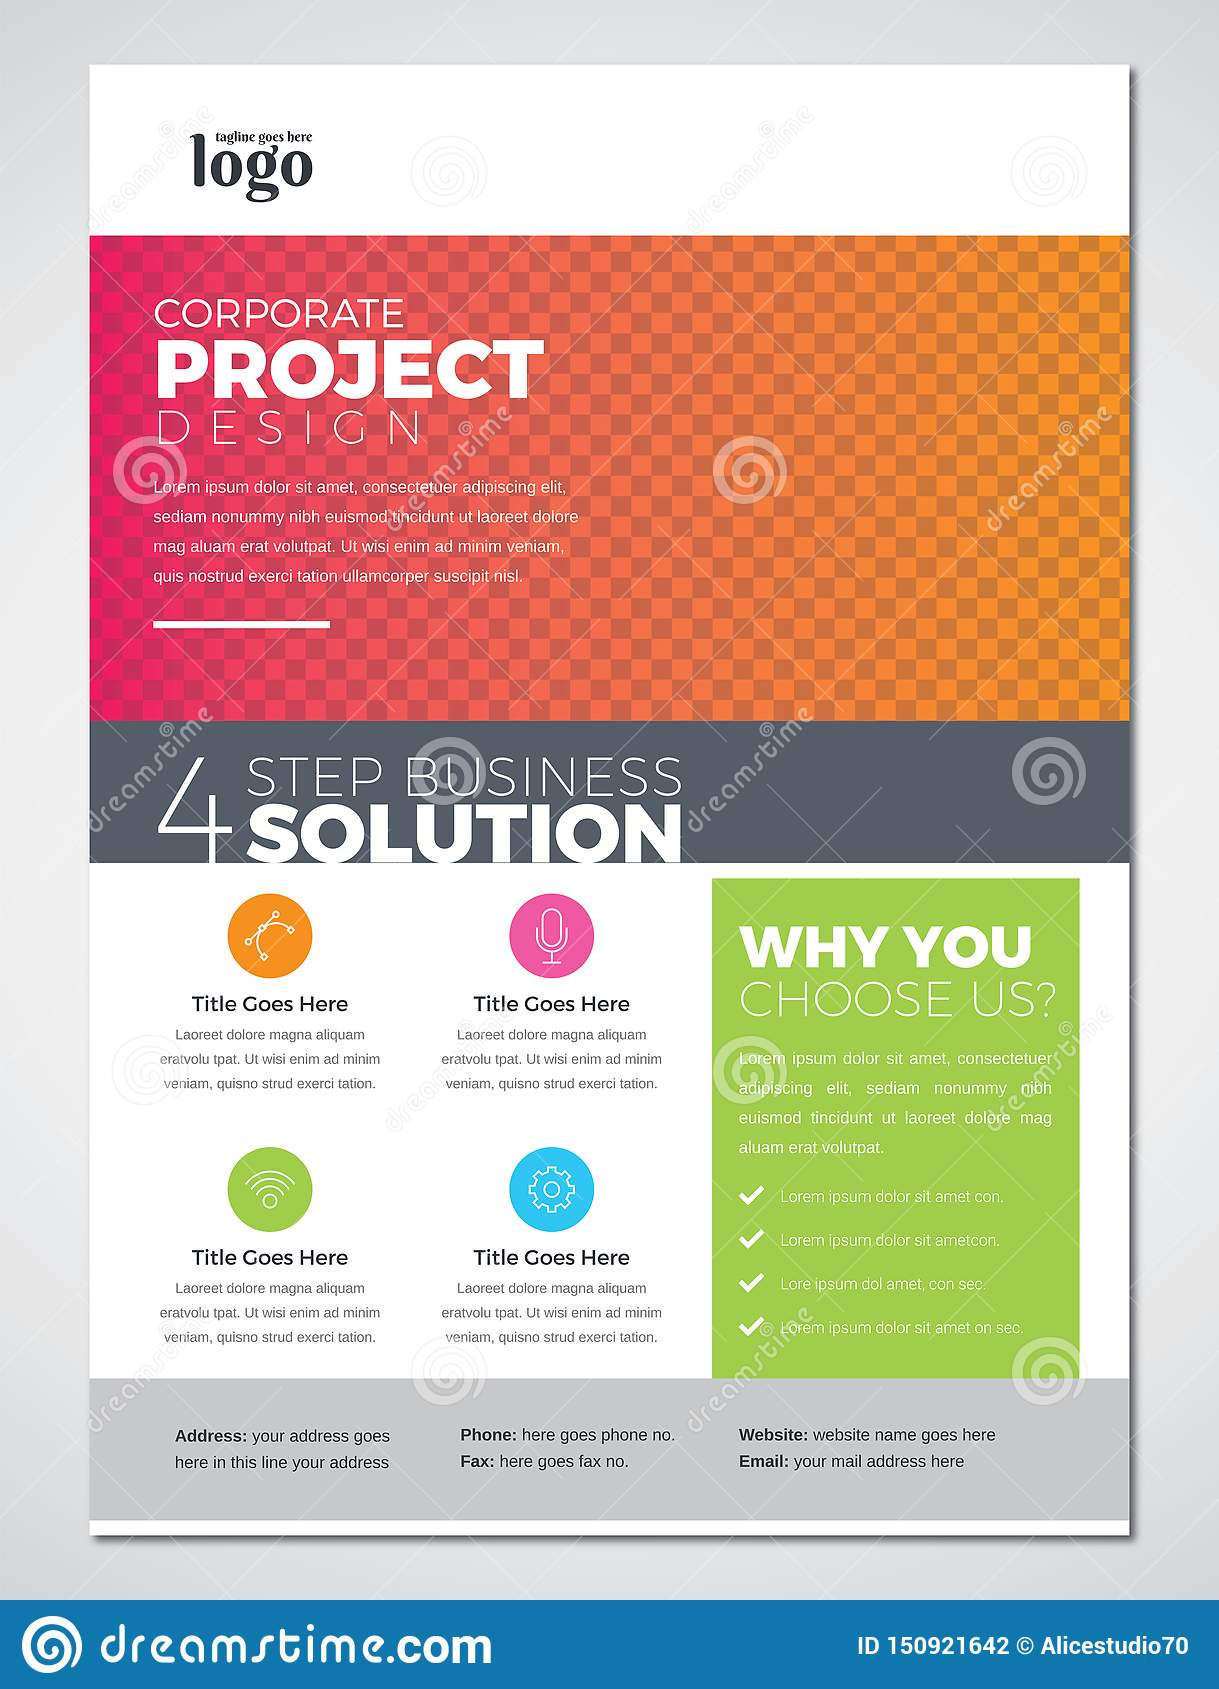 Colorful Print Ready Business Flyer Design Template